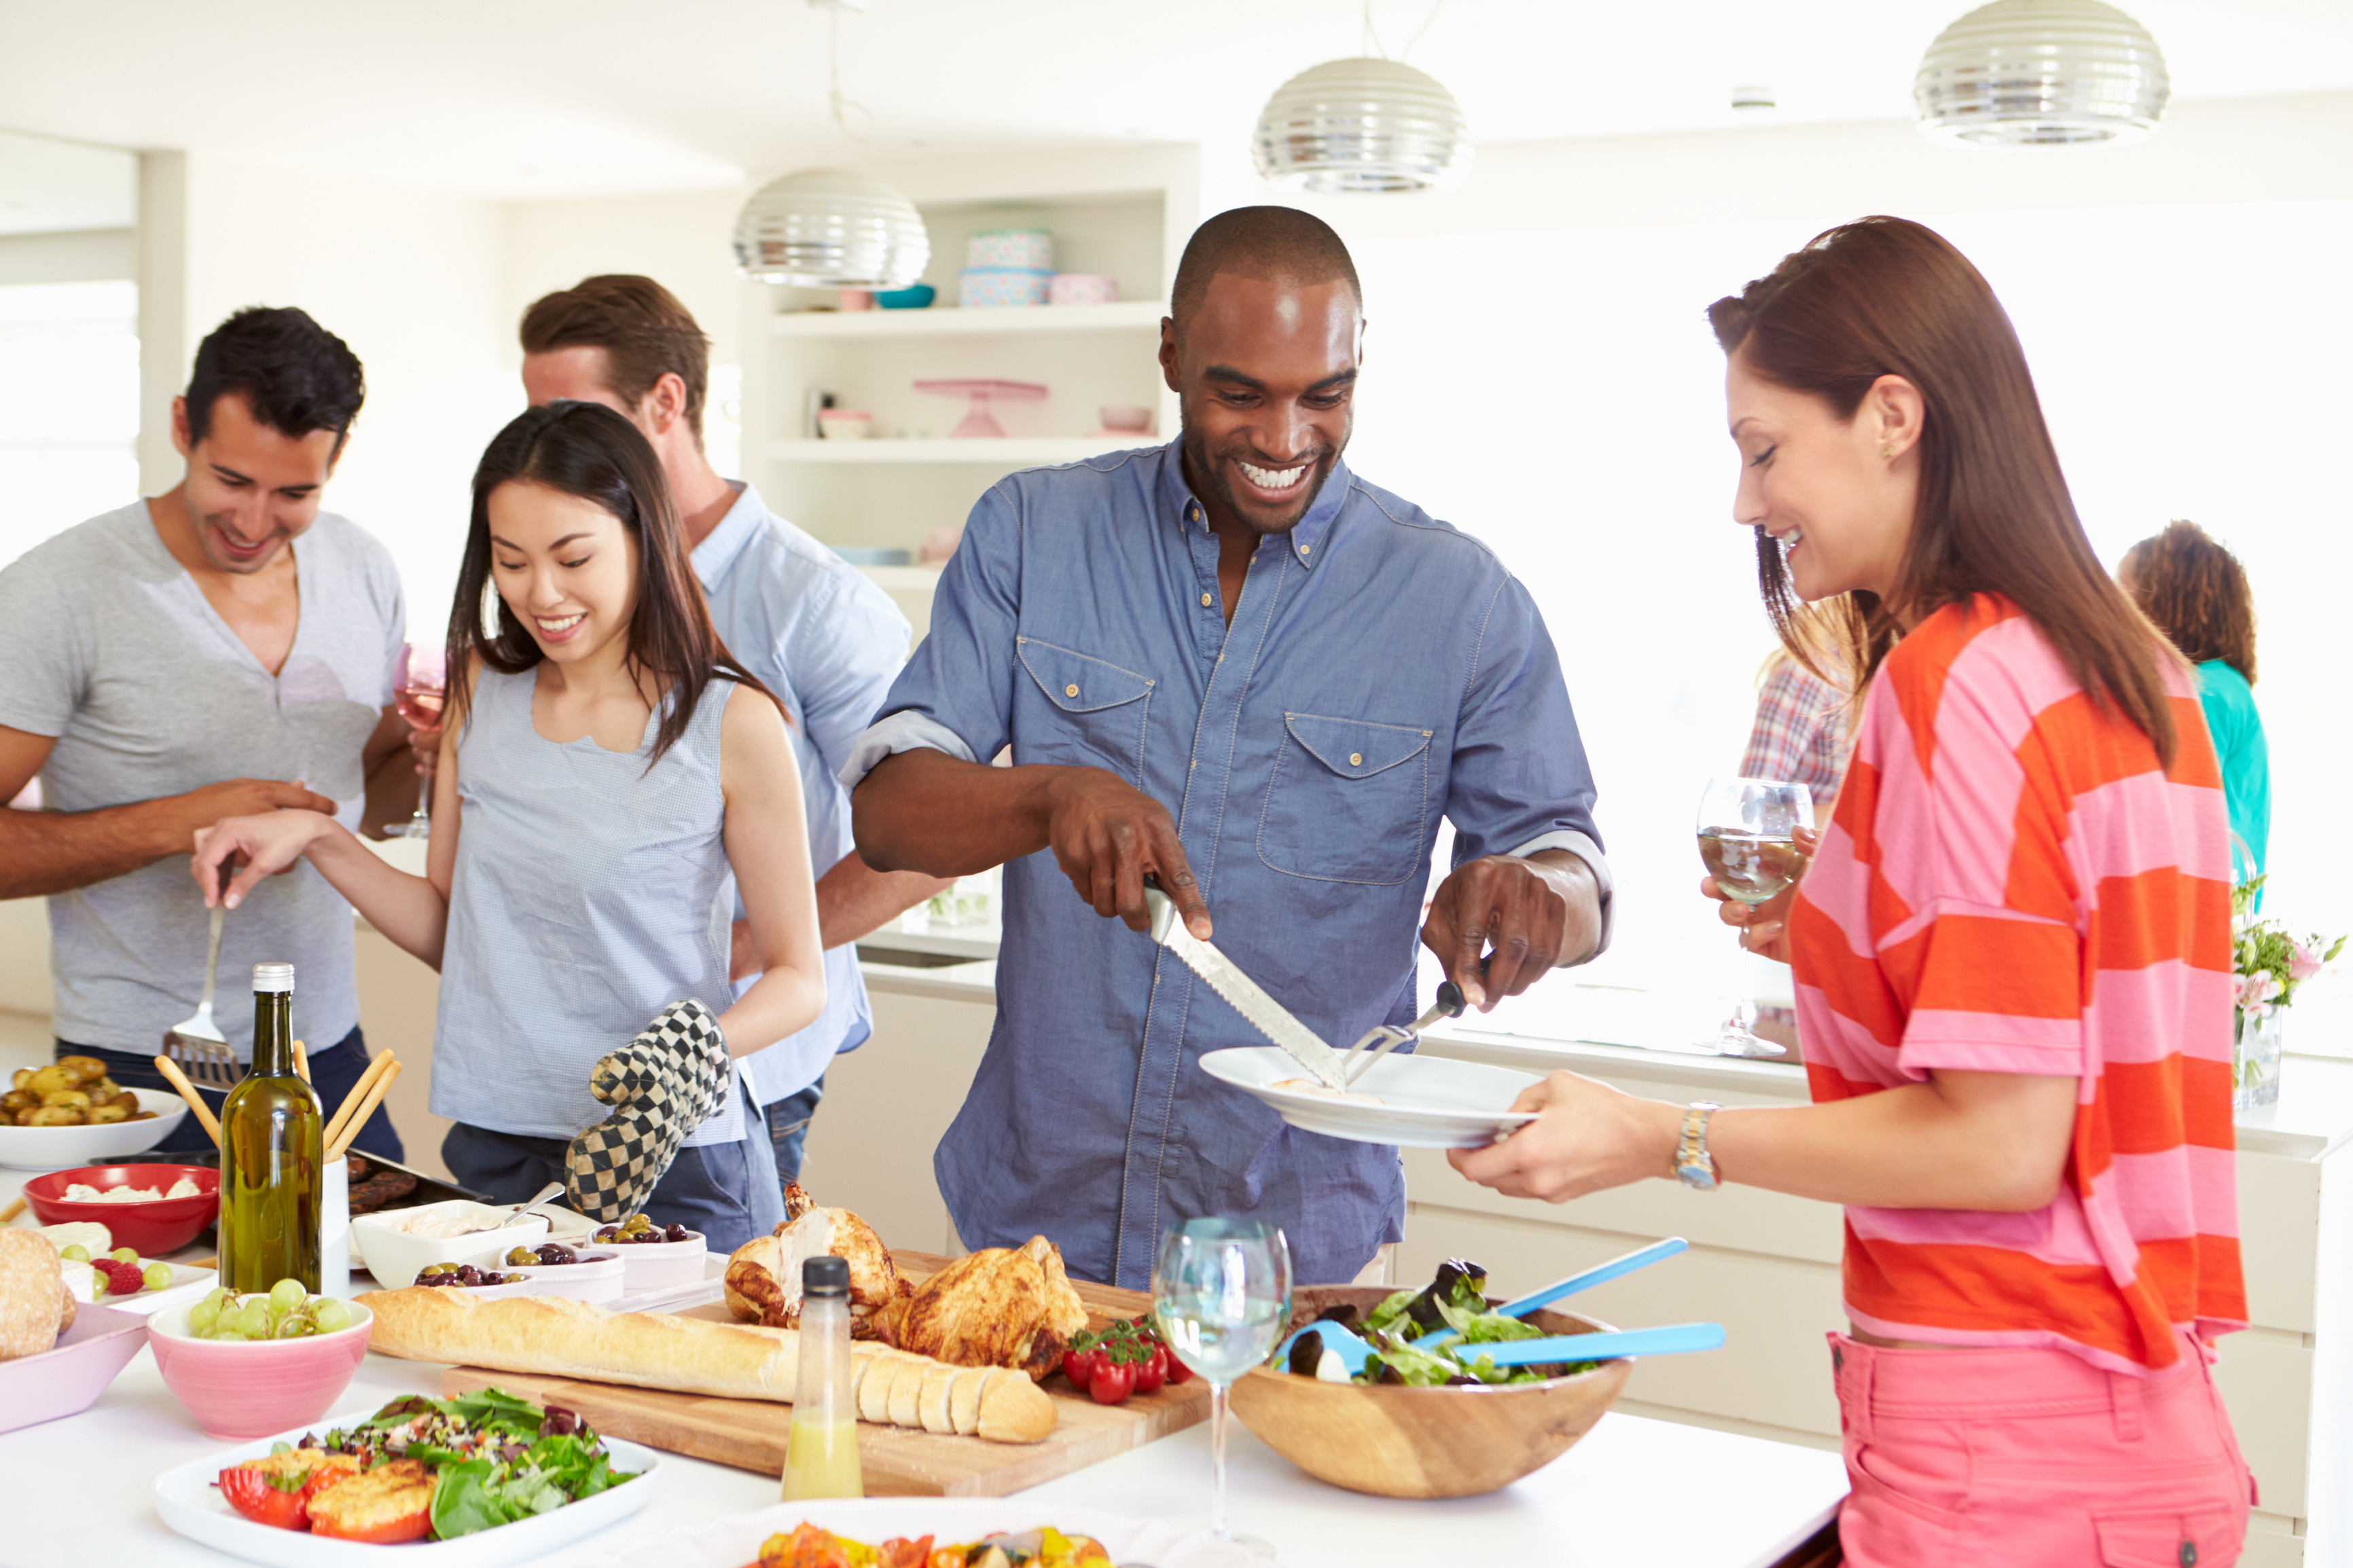 Fun Kitchen 5 Tips For Having Fun In The Kitchen Huffpost